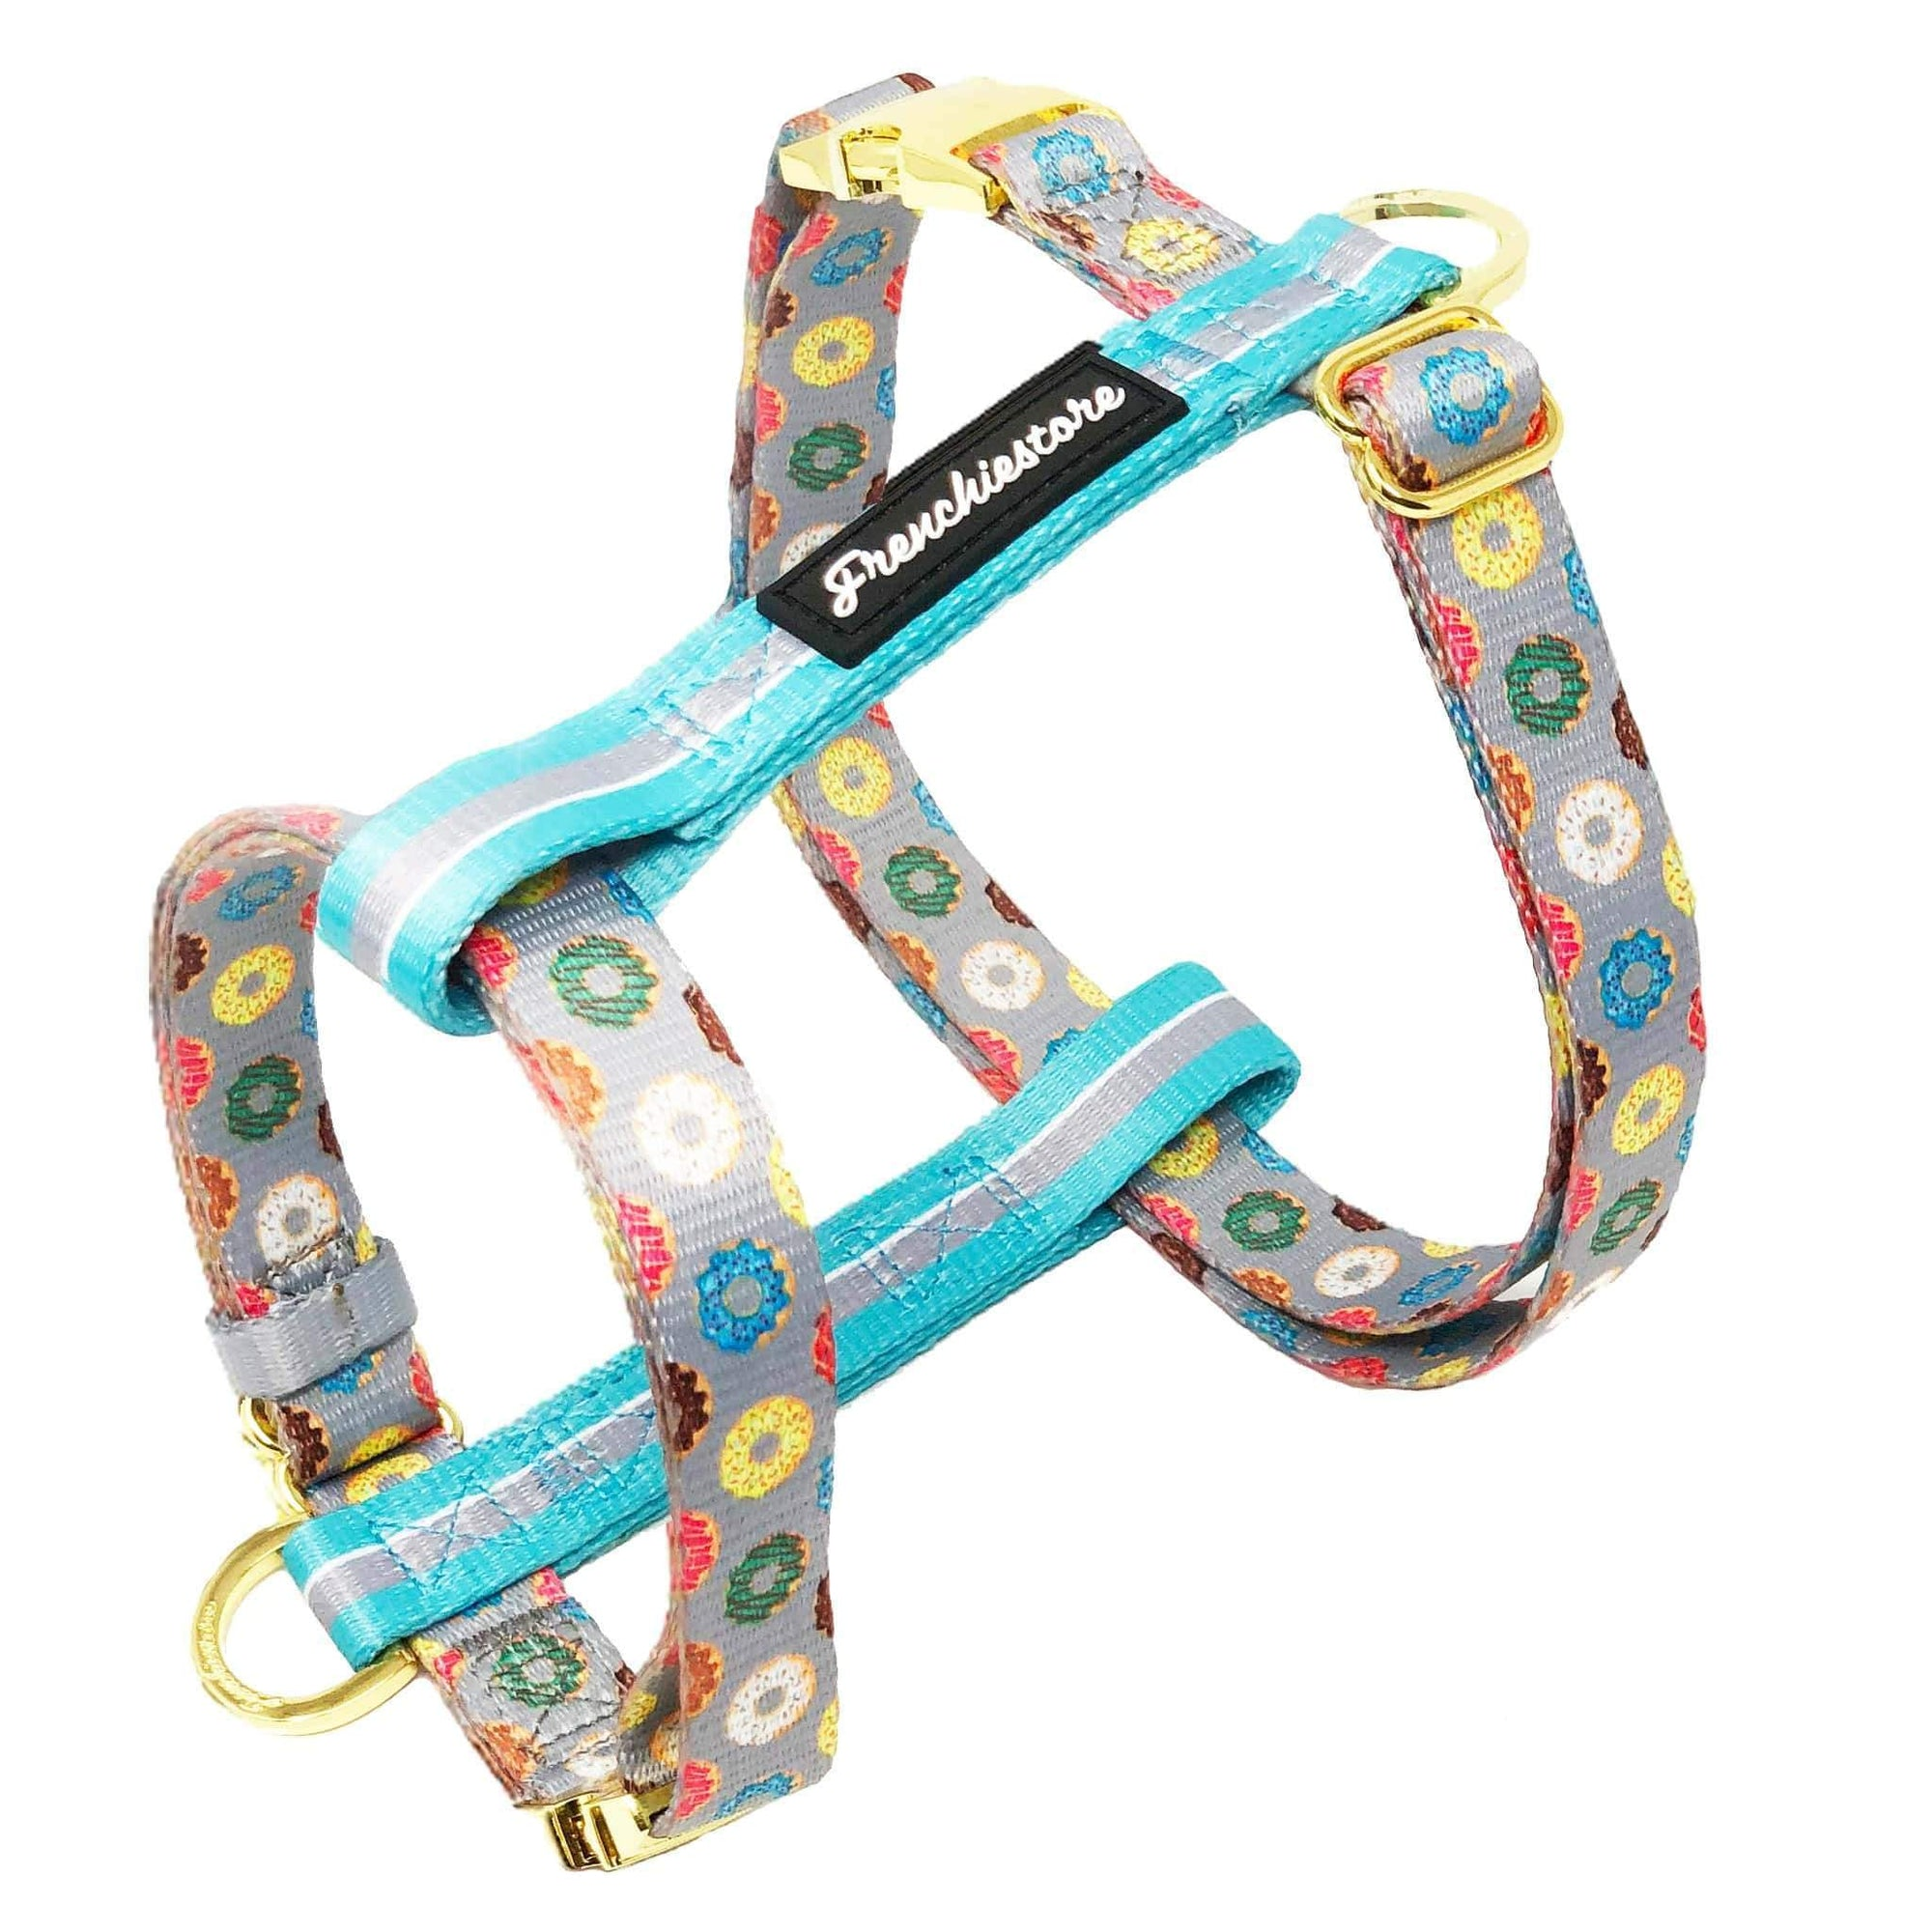 Frenchiestore Adjustable Pet Health Harness | Mint StarPup